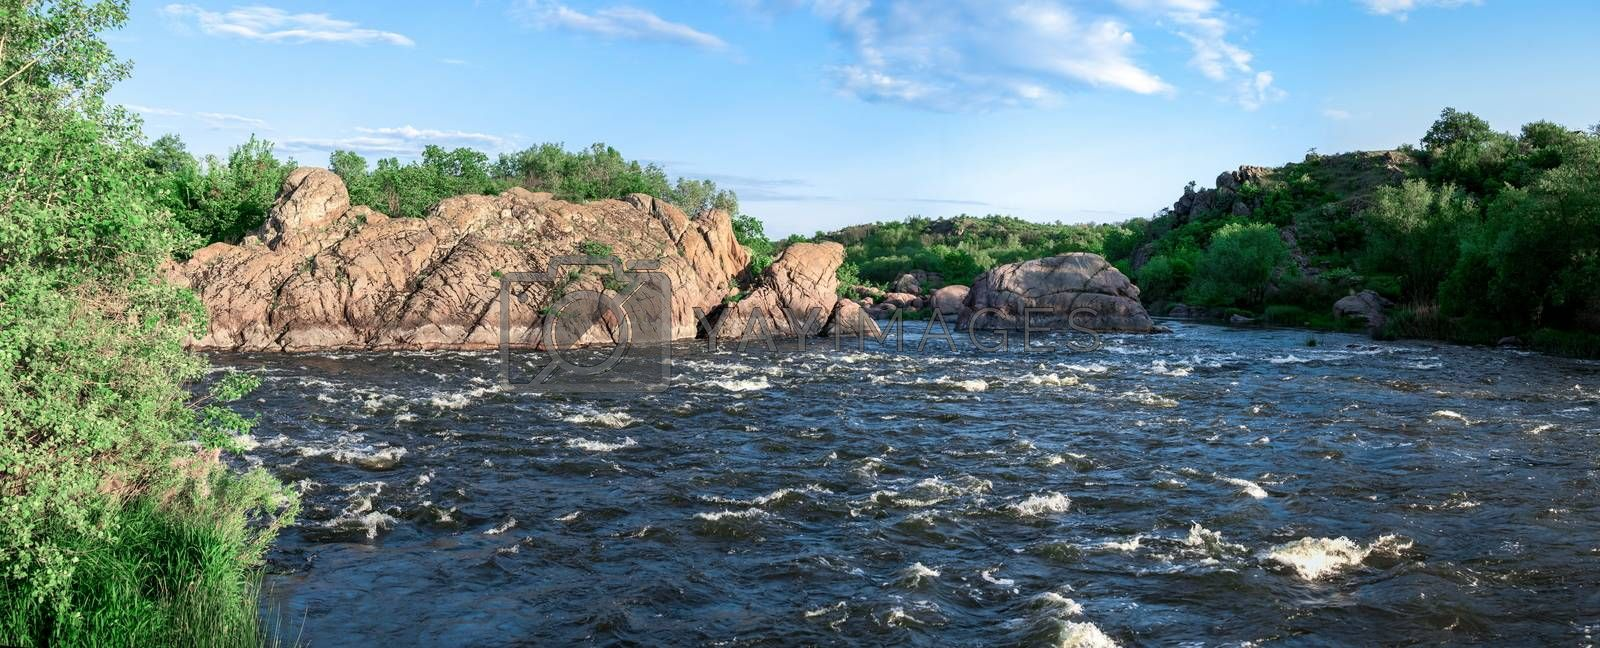 The rocky banks of the Southern Bug River near the village of Migiya in Ukraine on a sunny summer day